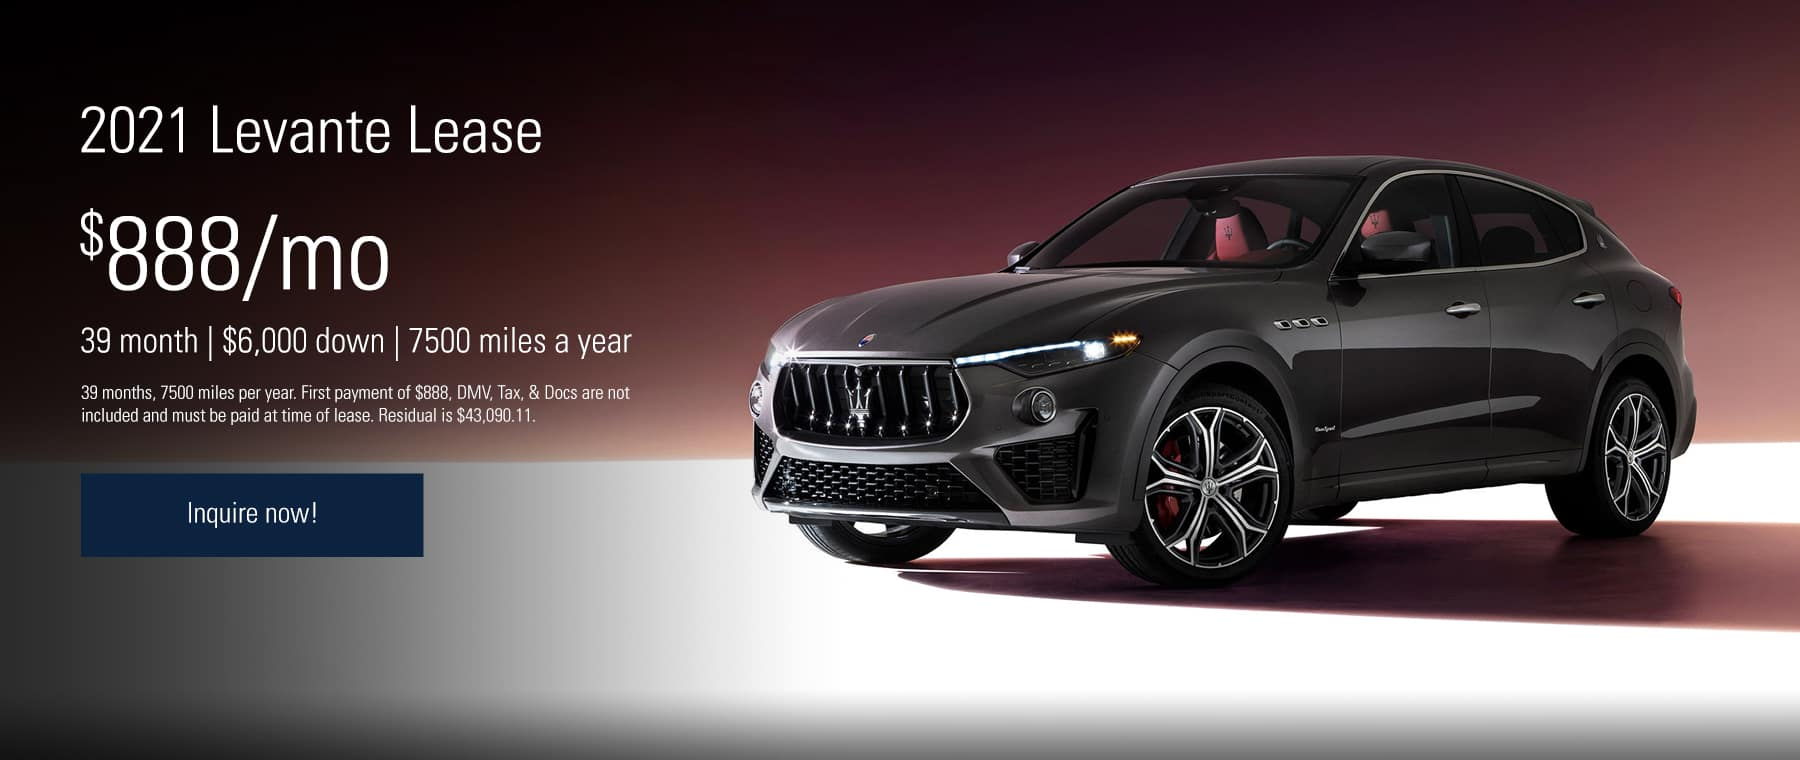 2021 Levante Lease Offer, 39 month, $6,000 down, $888/mo., 7500 miles a year